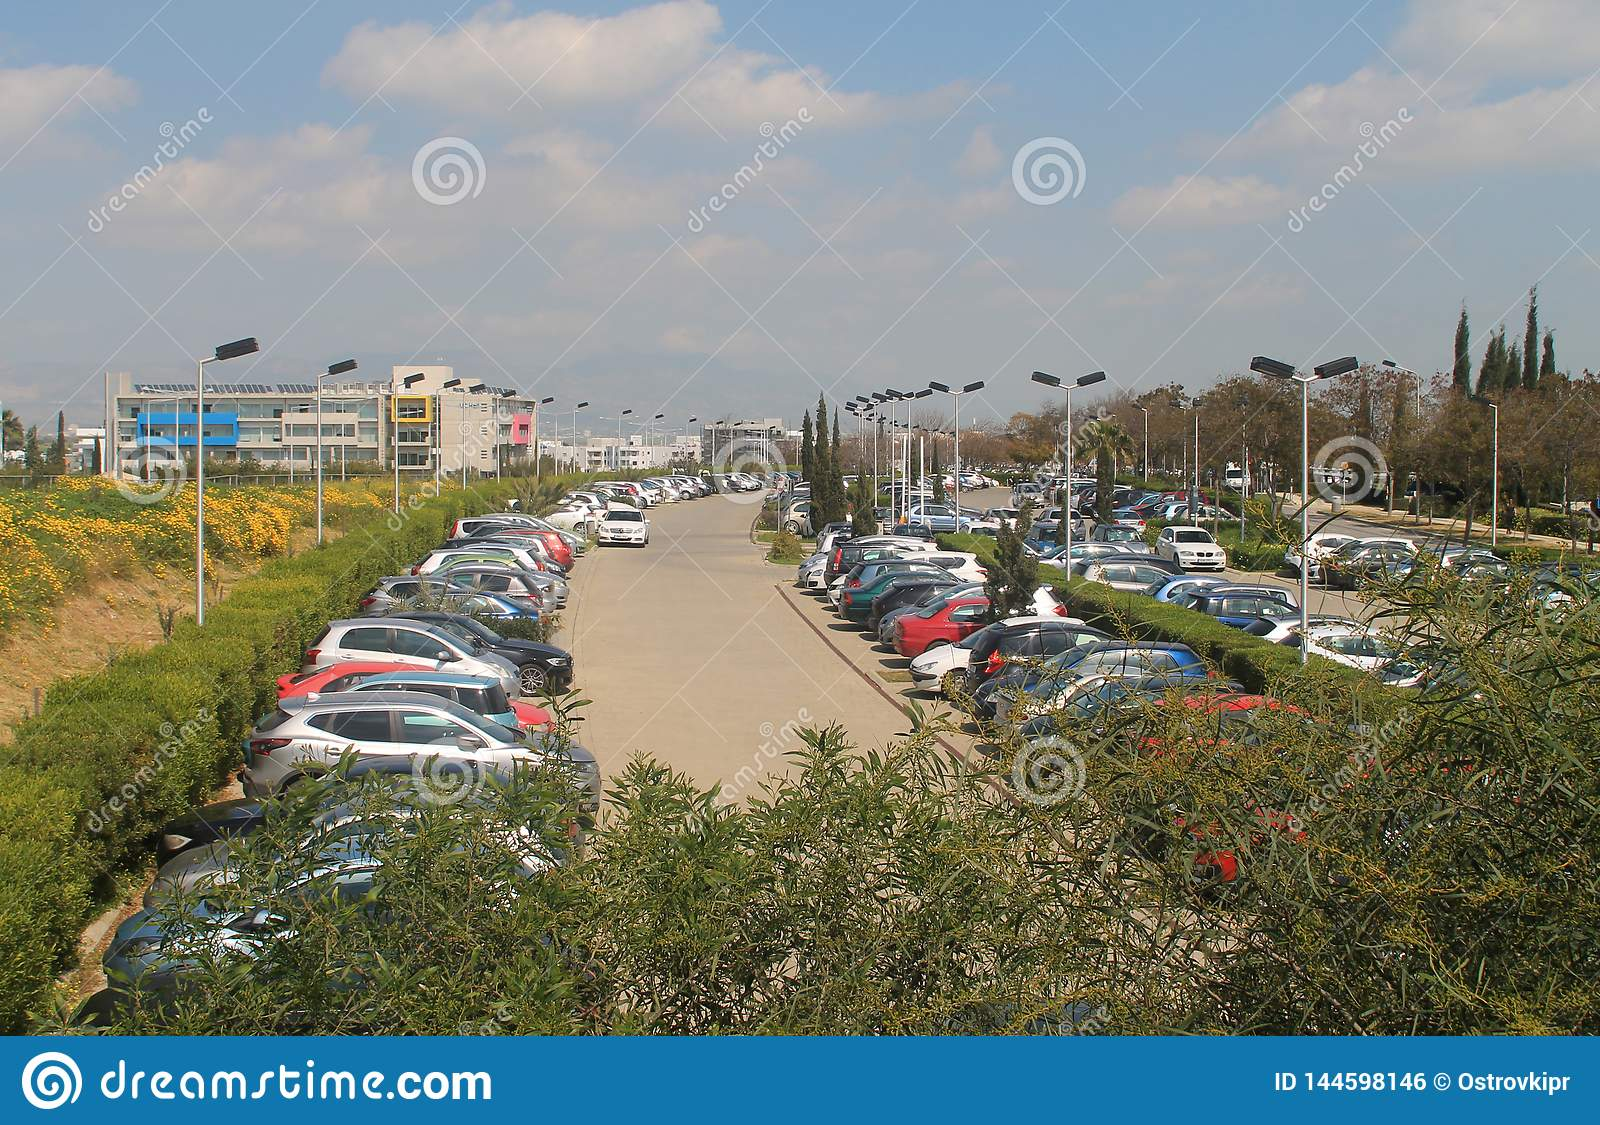 Busy outdoor parking lot in Nicosia